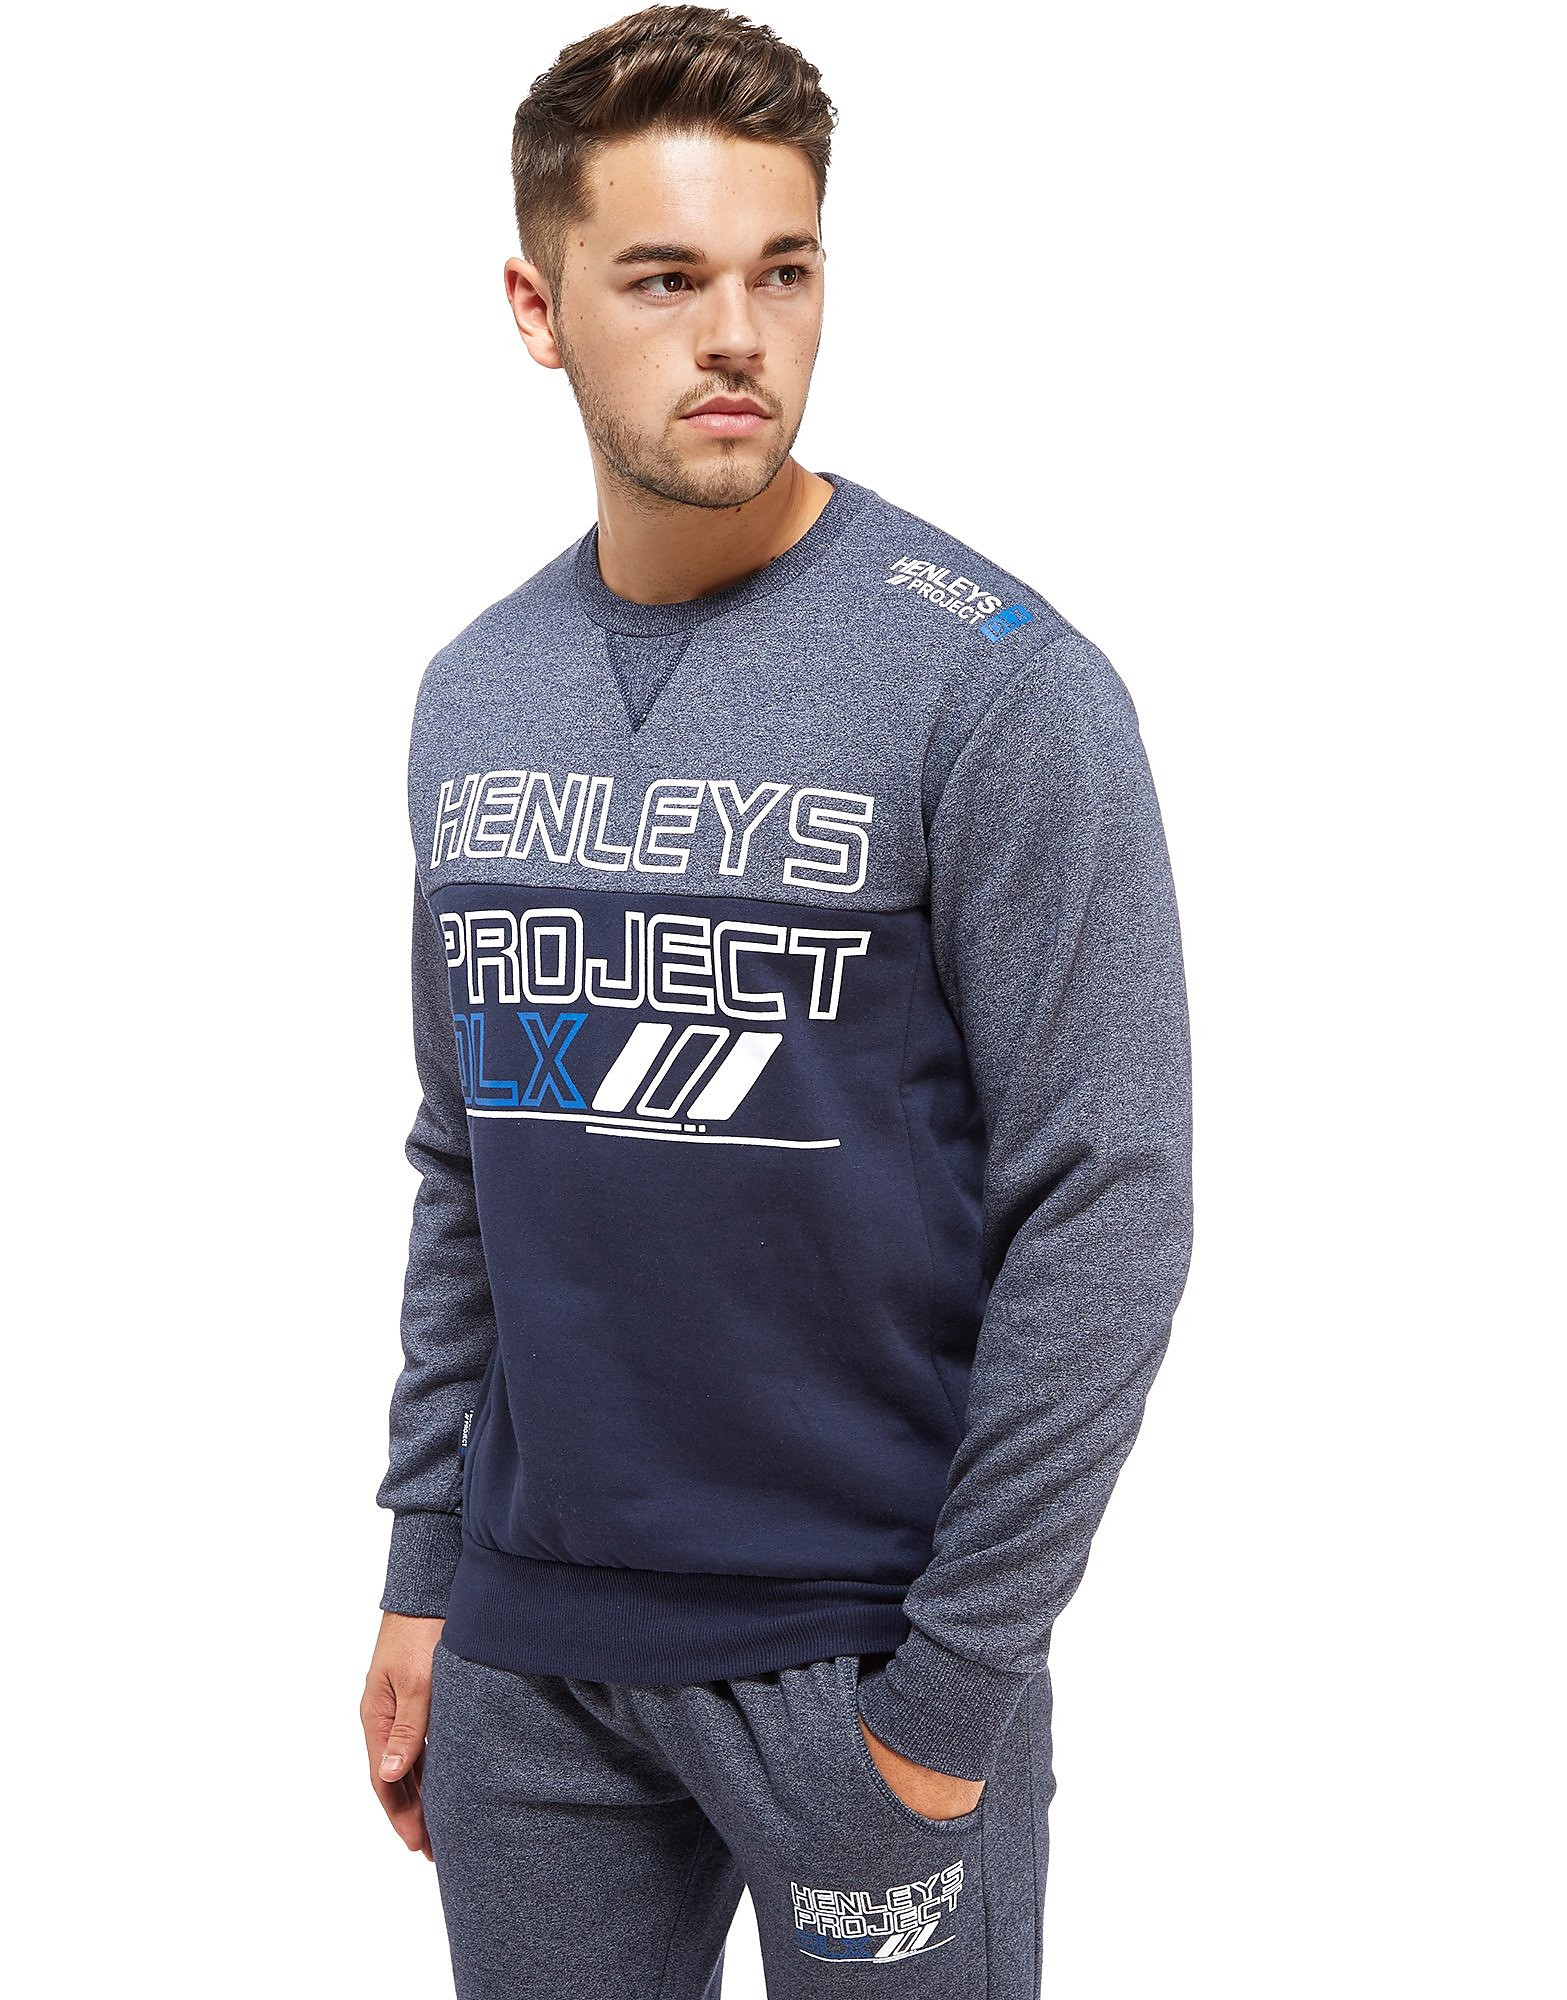 Henleys Ever Colour Block Crew Sweatshirt